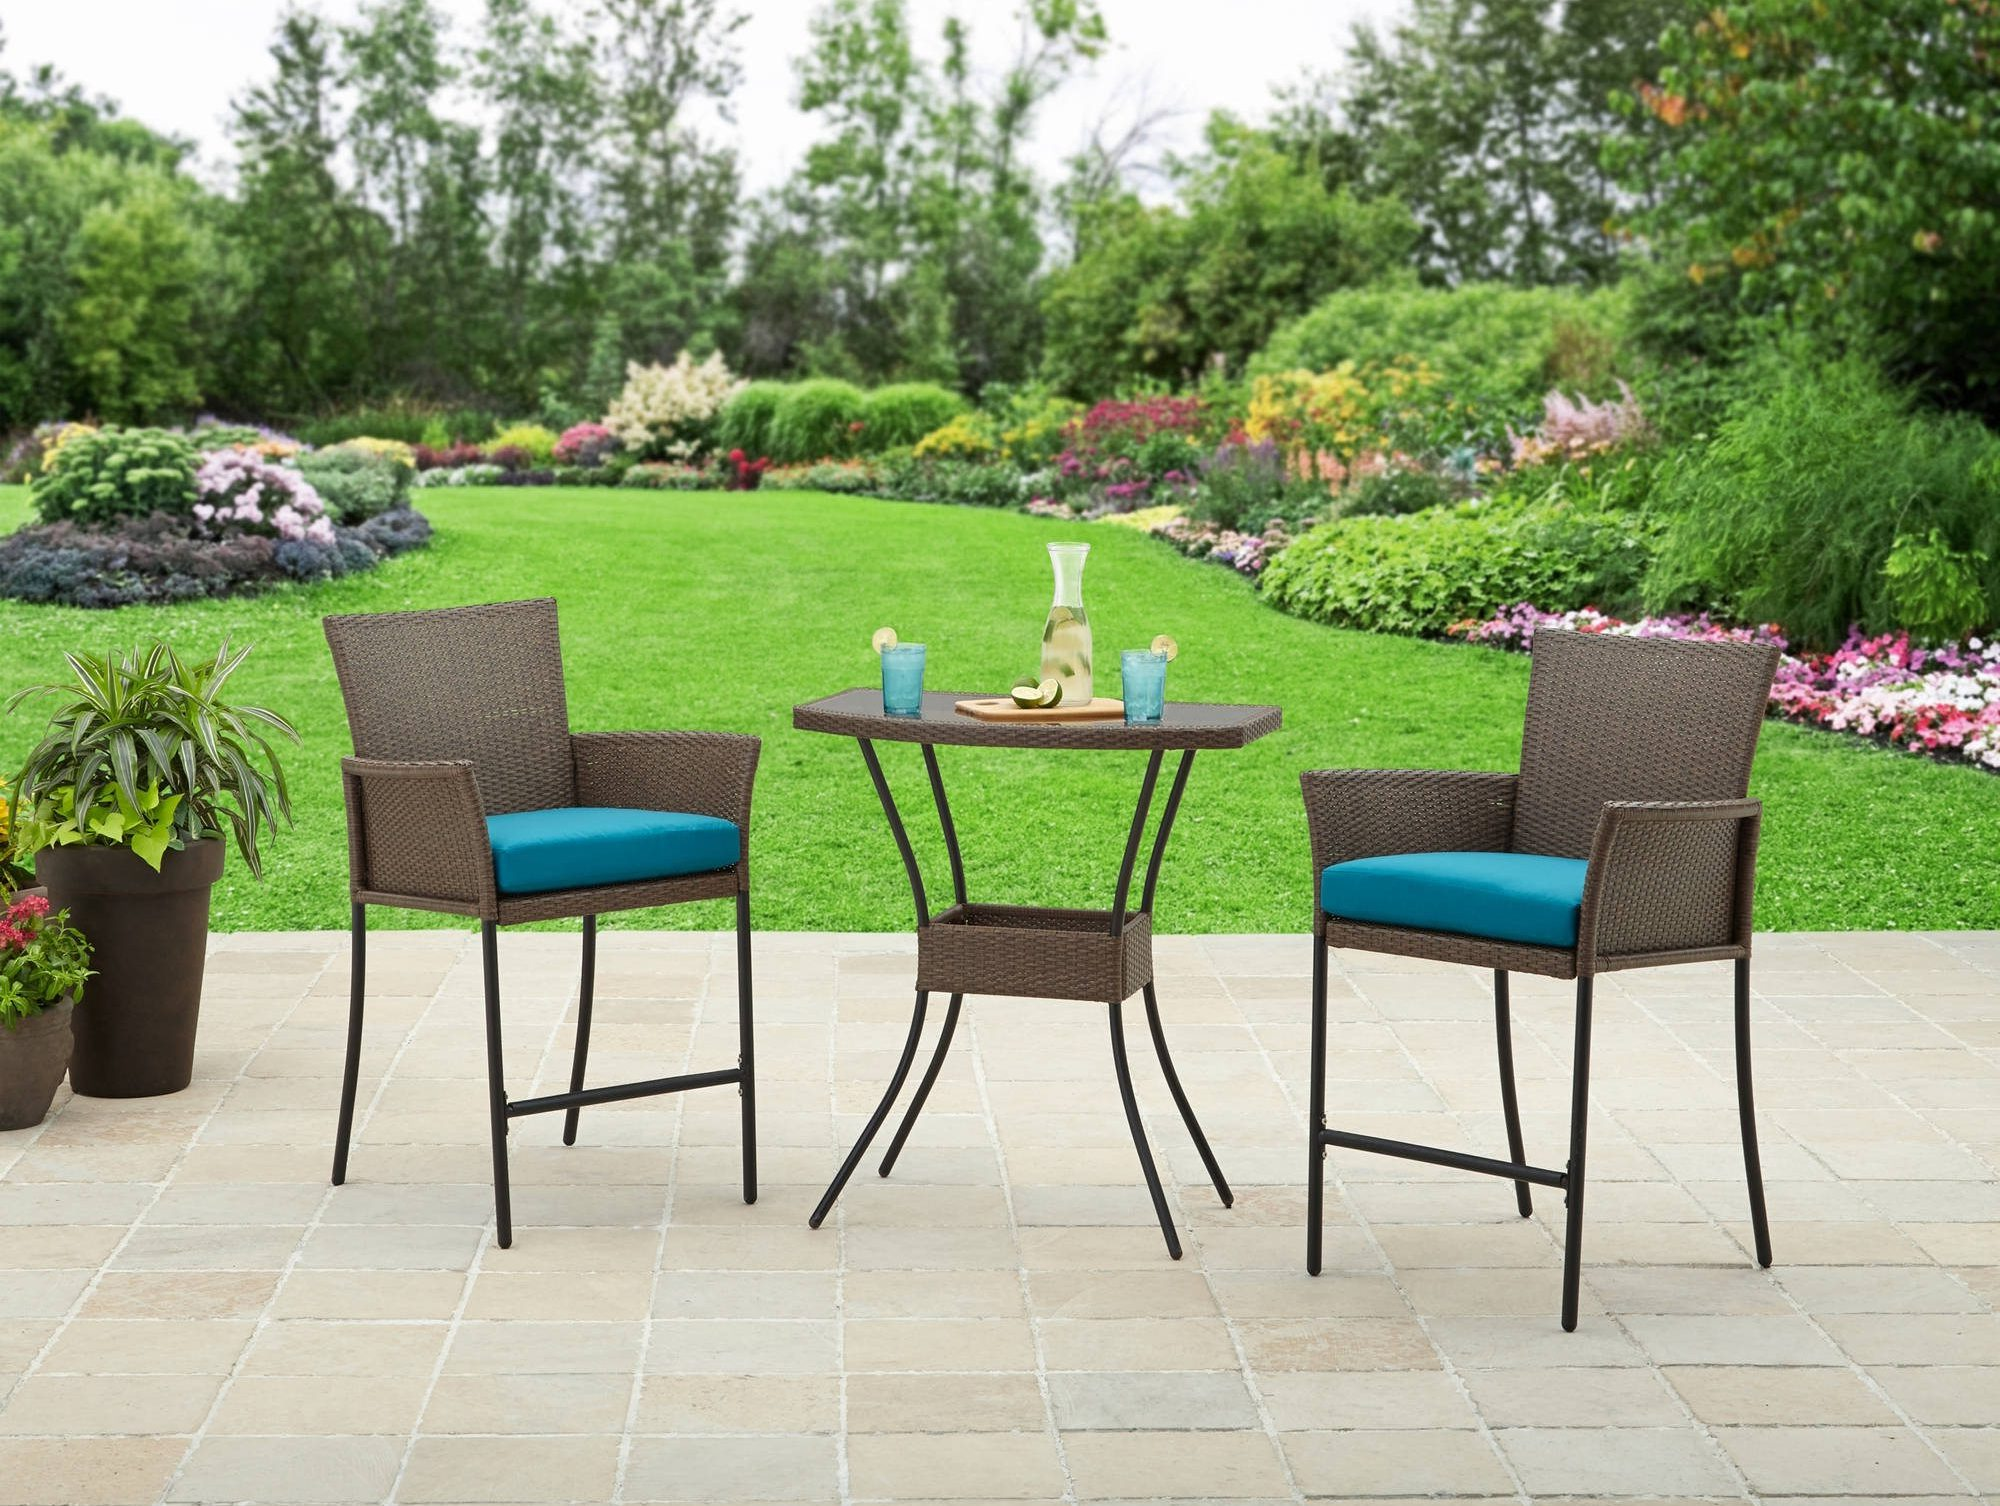 Art van outdoor furniture for perfect patio furnitures ideas roy home design Home expo patio furniture